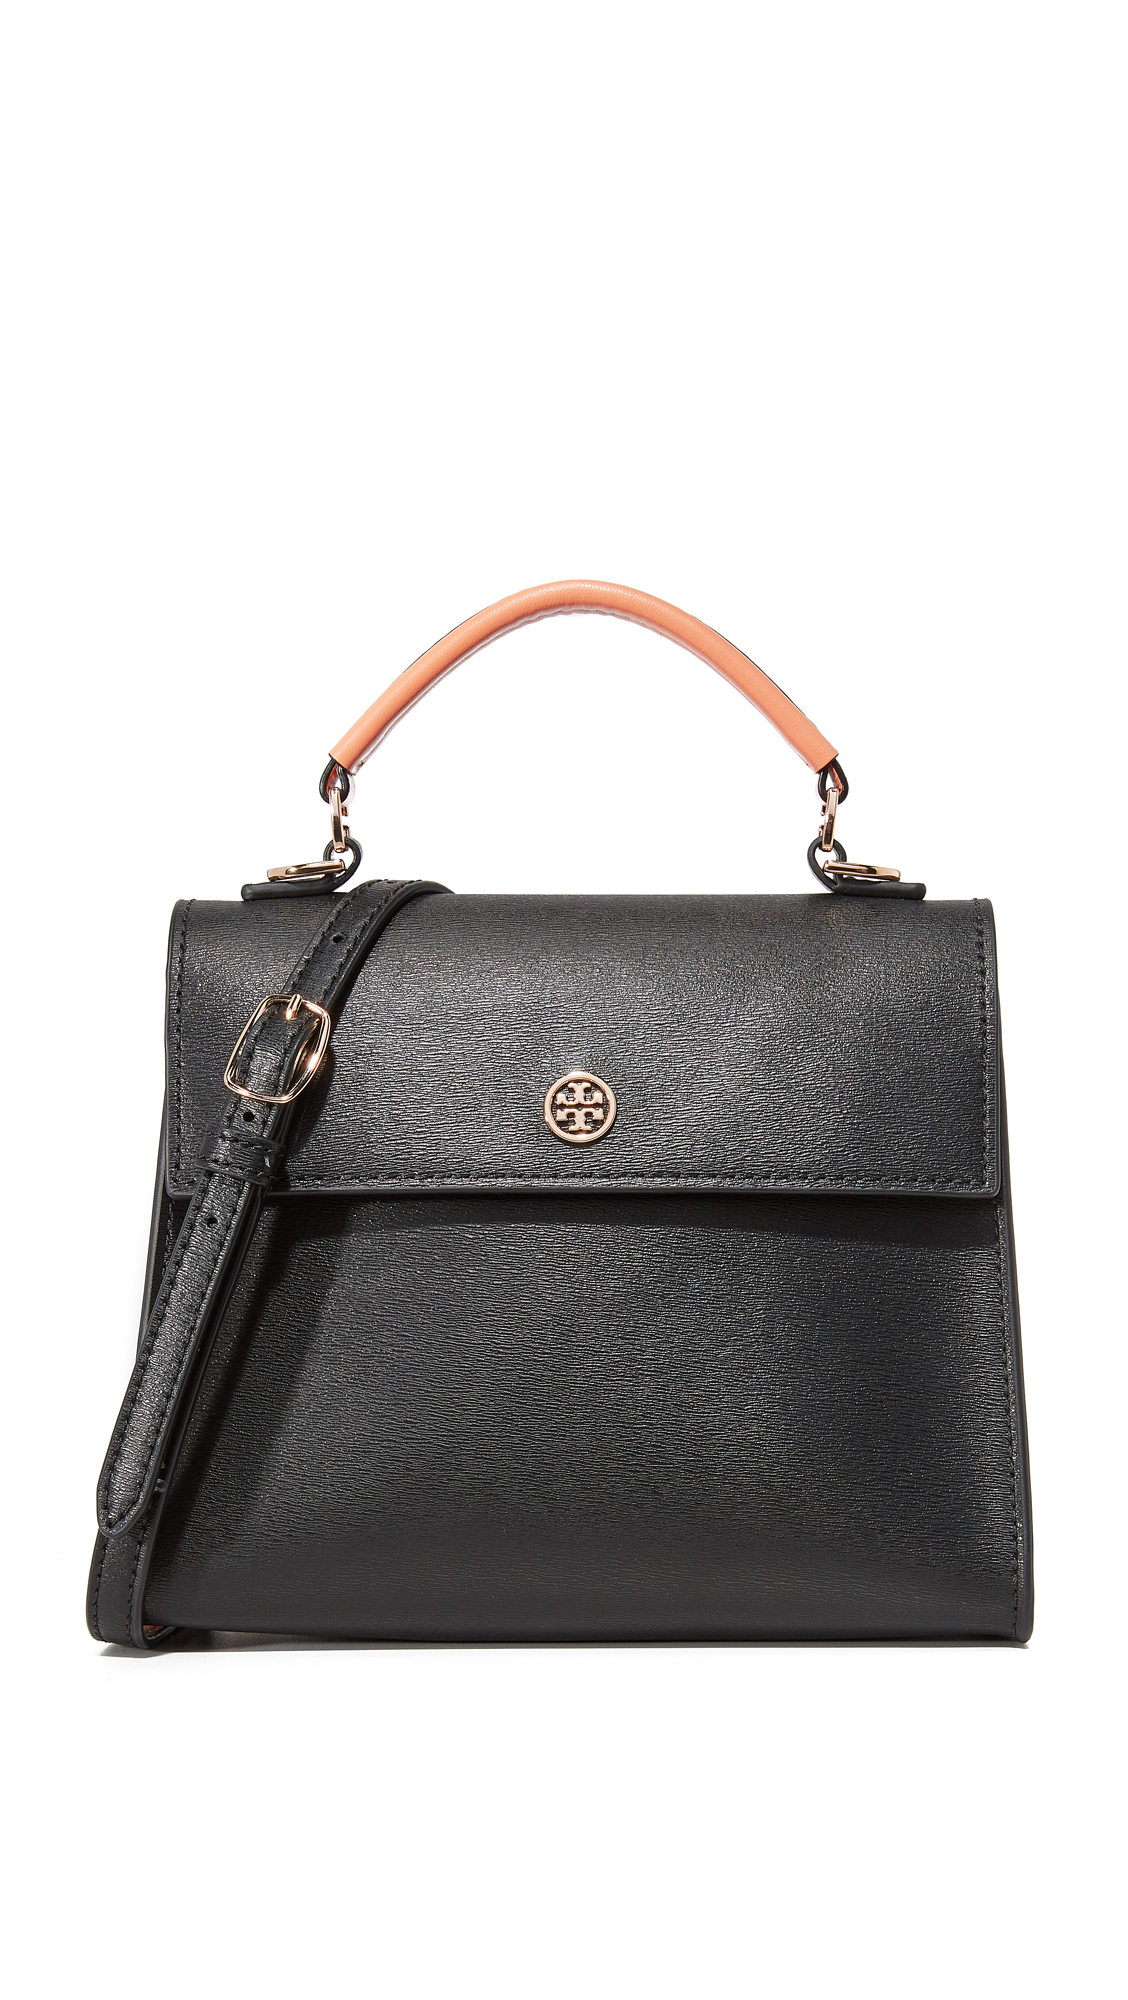 04abfc6388a0 Tory Burch Parker Colorblock Small Top Handle Satchel